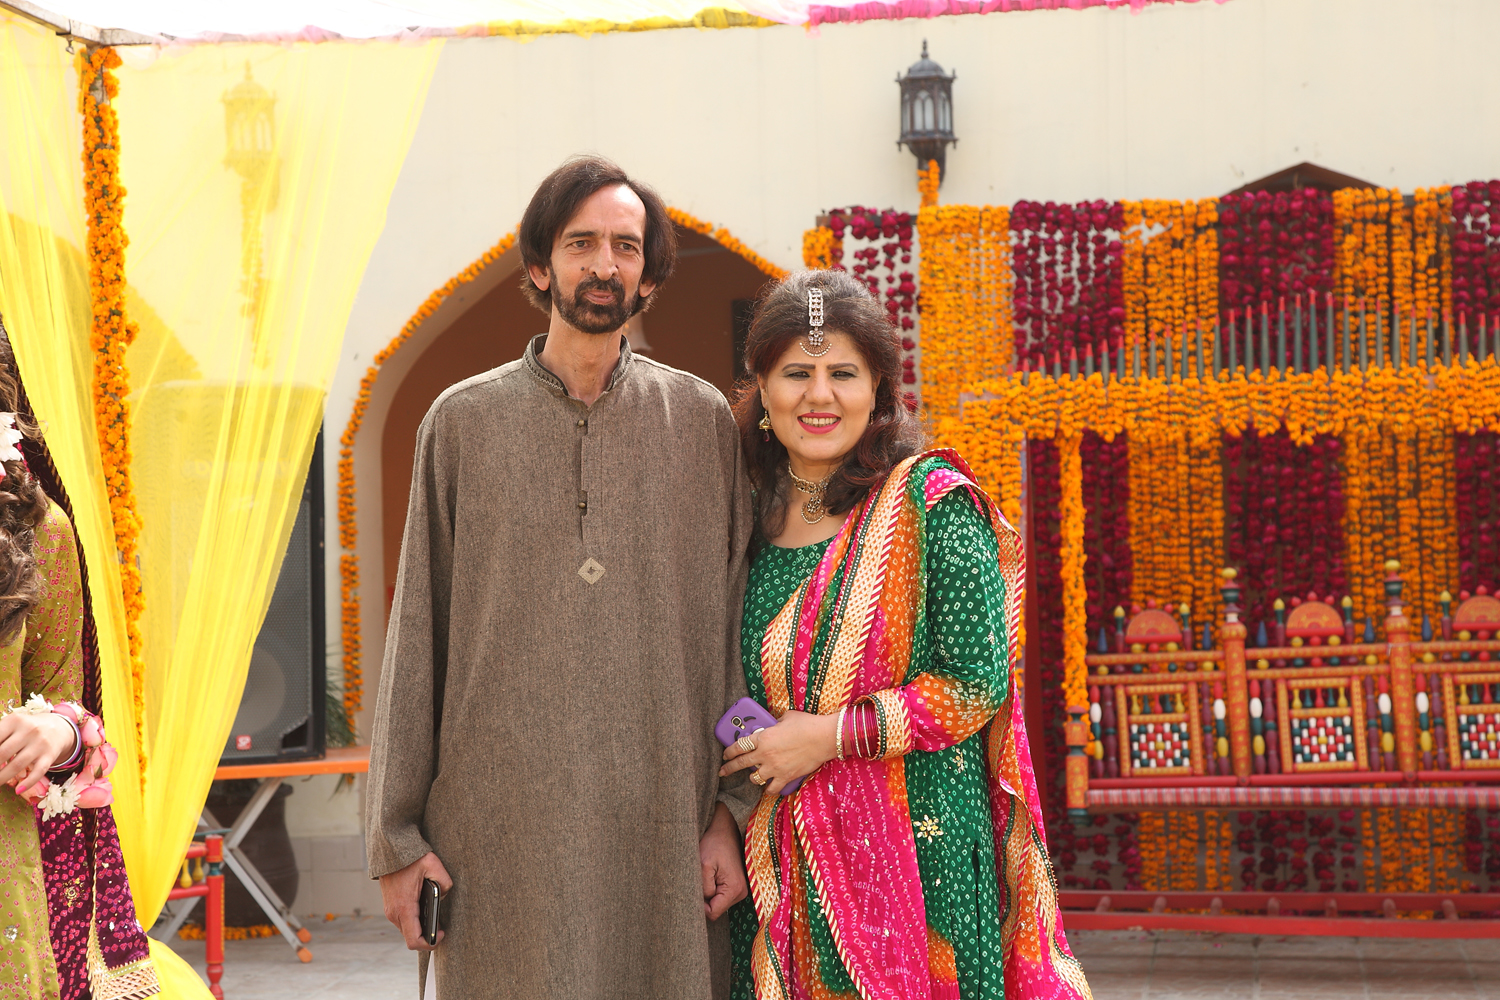 Mr and Mrs Sikandar Pasha